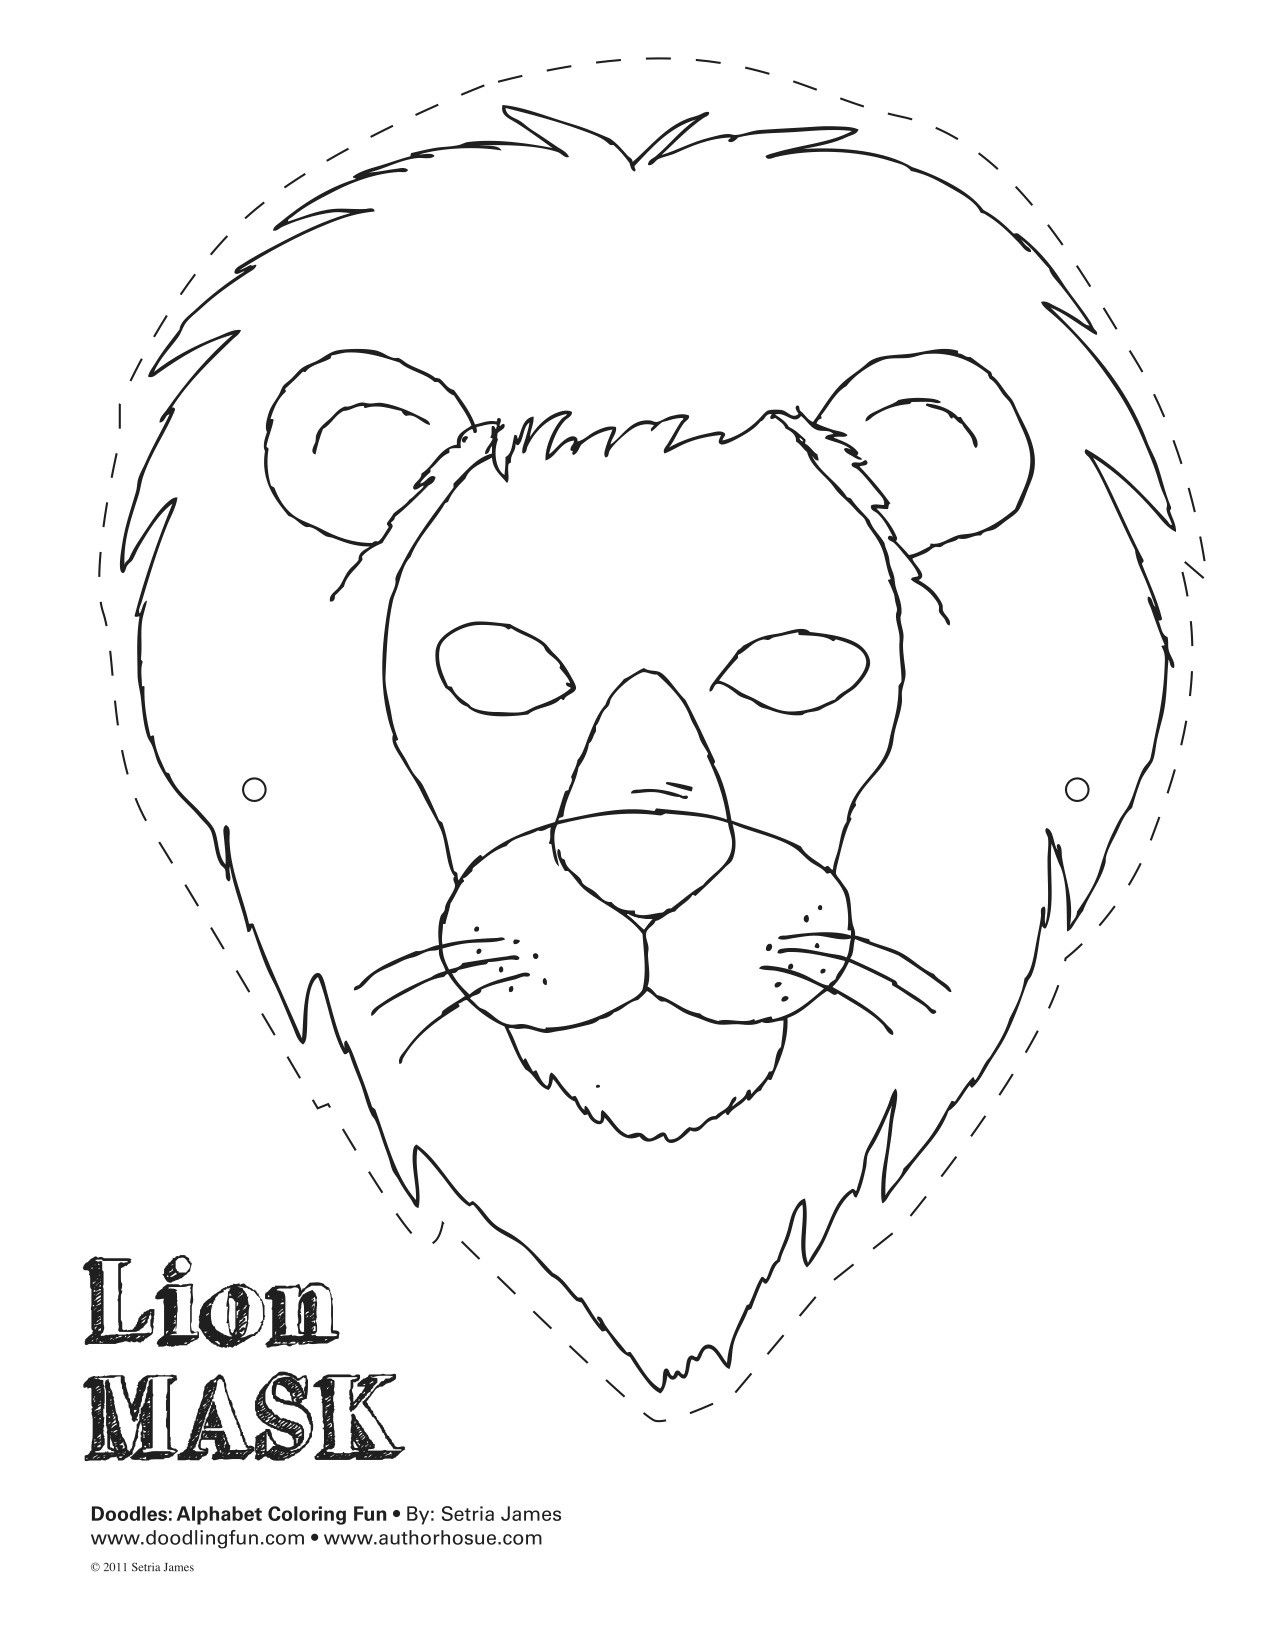 Lion Mask Coloring Page Youngandtae Com Animal Masks Animal Masks For Kids Animal Mask Templates